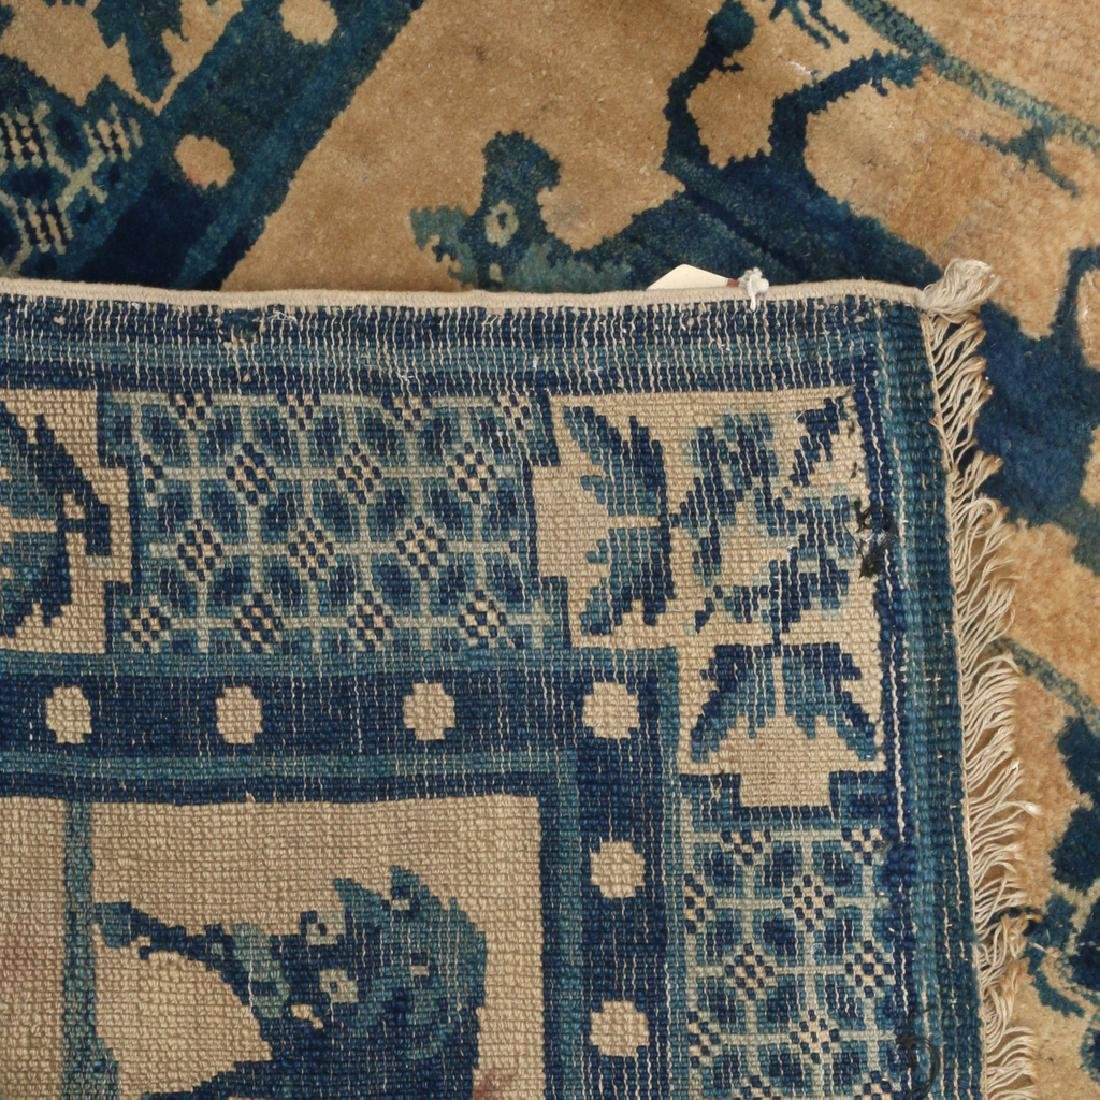 (2pc) ANTIQUE CHINESE PICTORIAL RUGS - 9